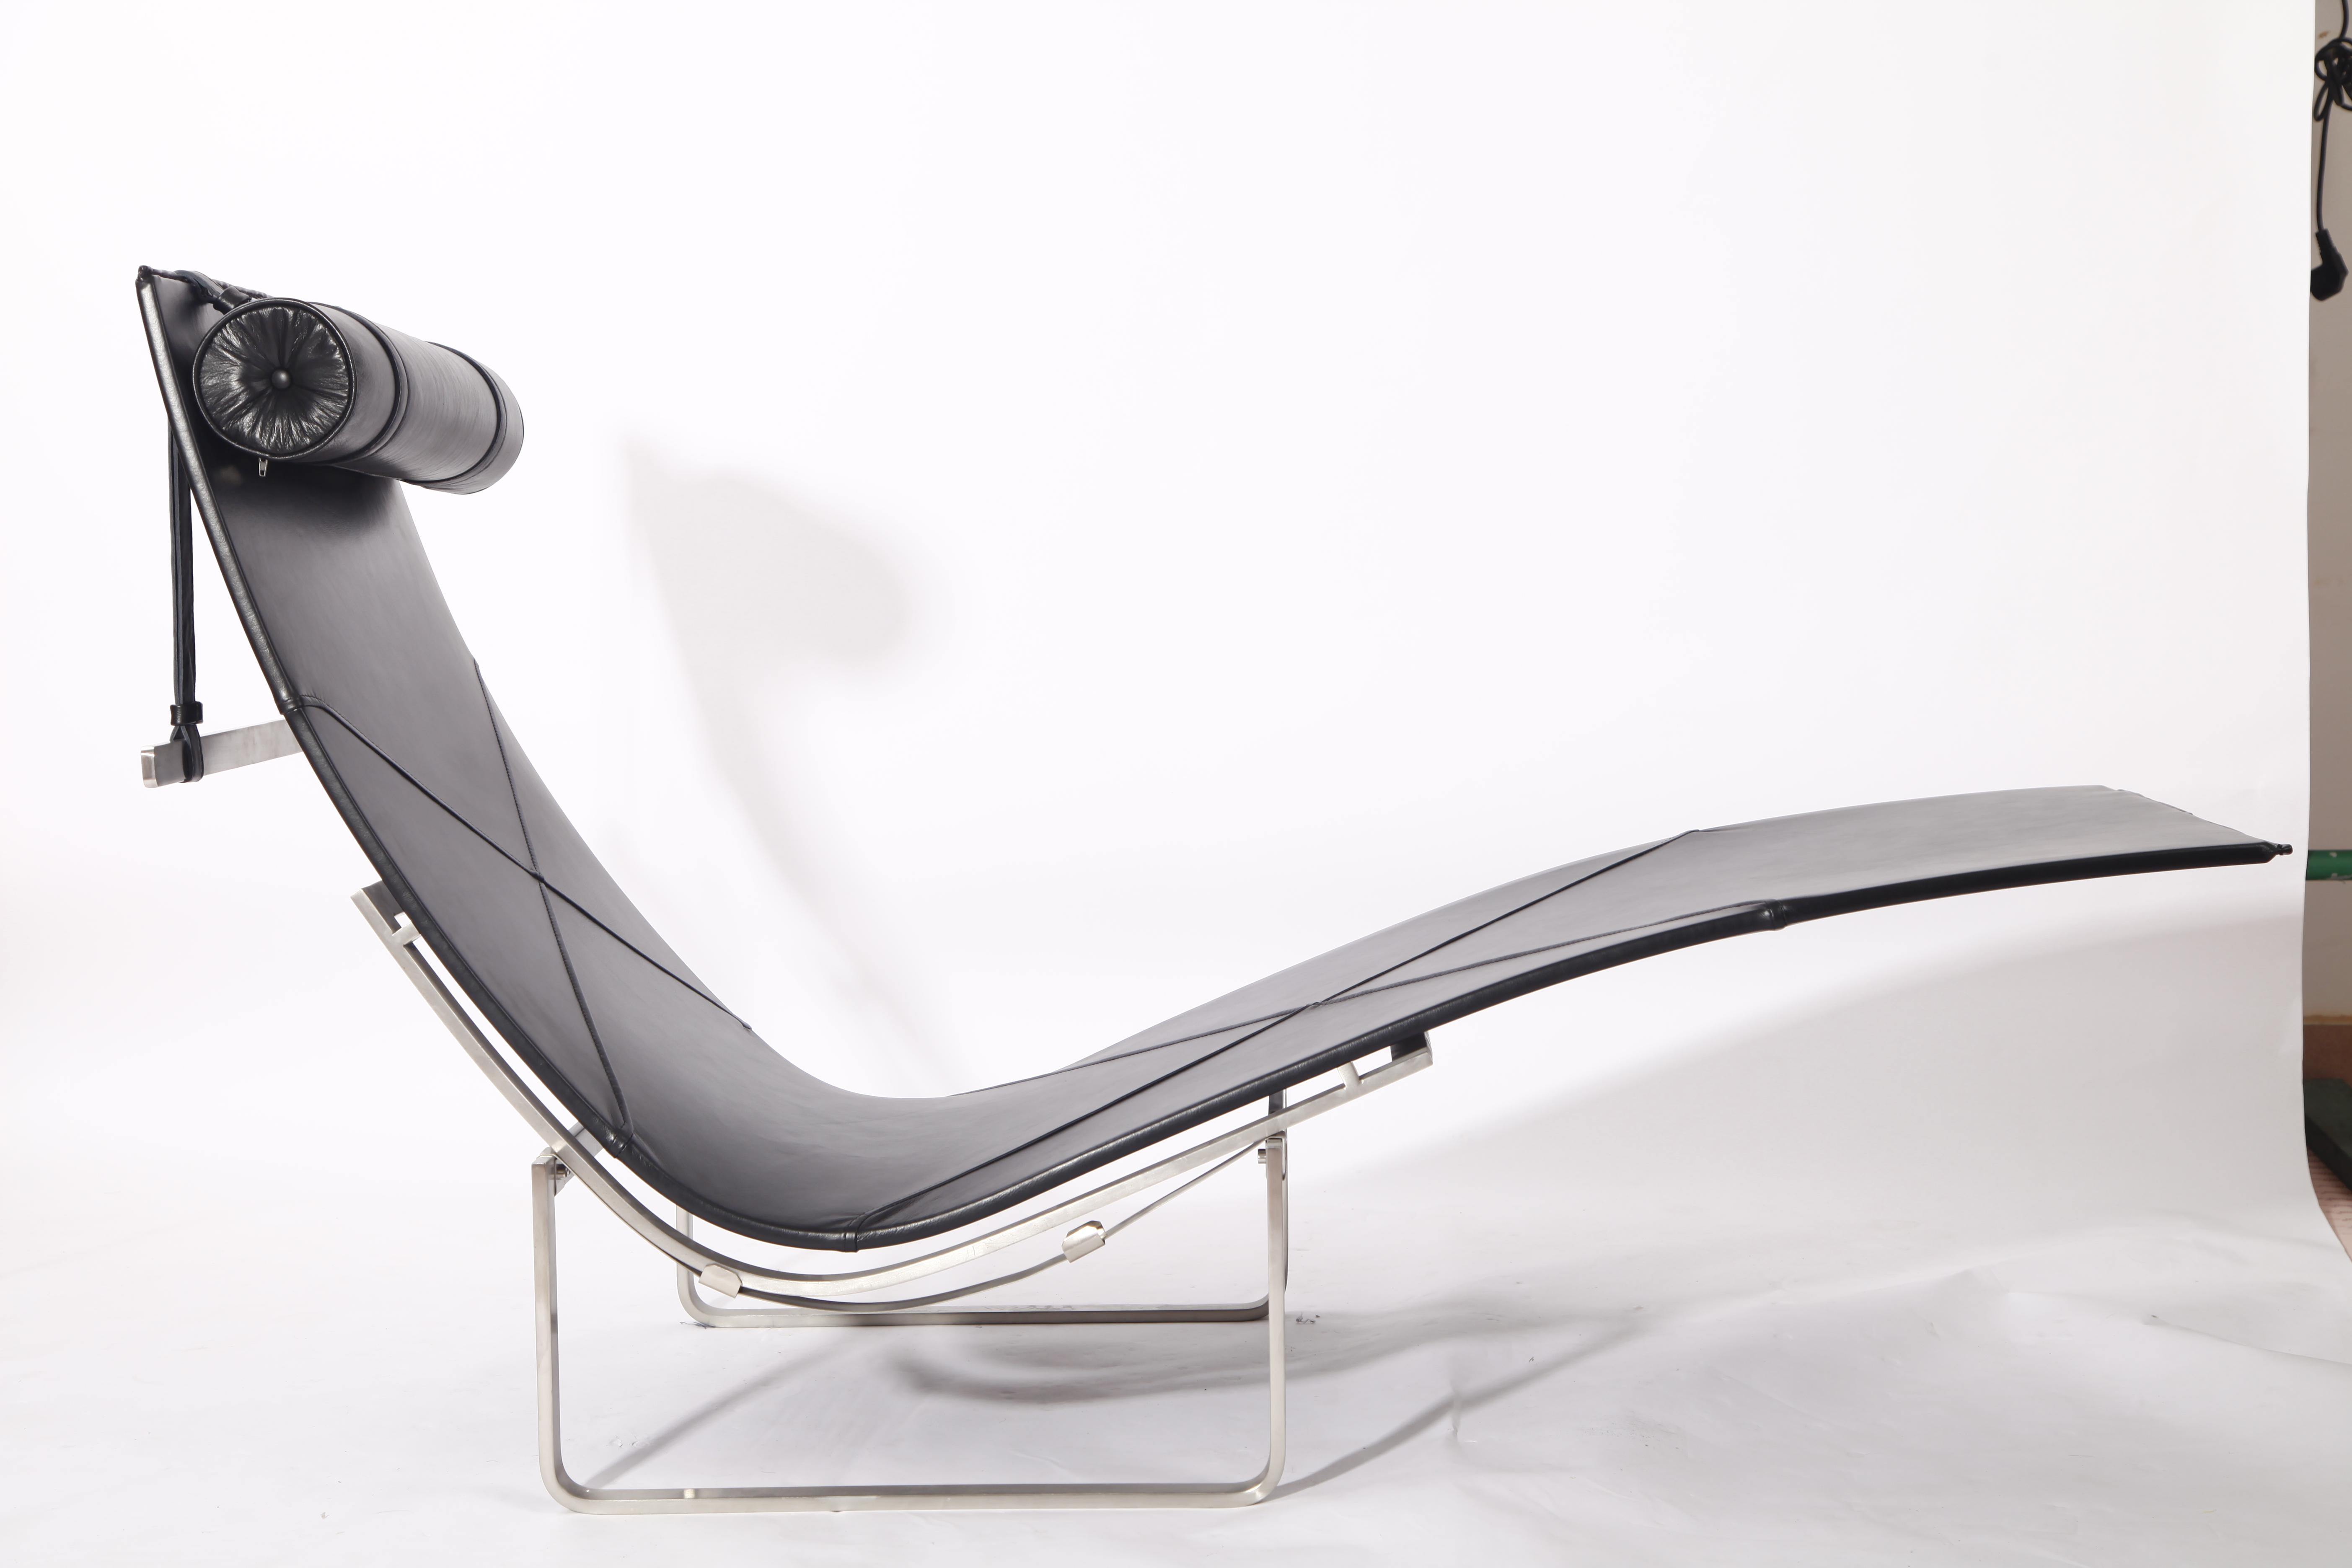 PK24 chaise lounge chair replica